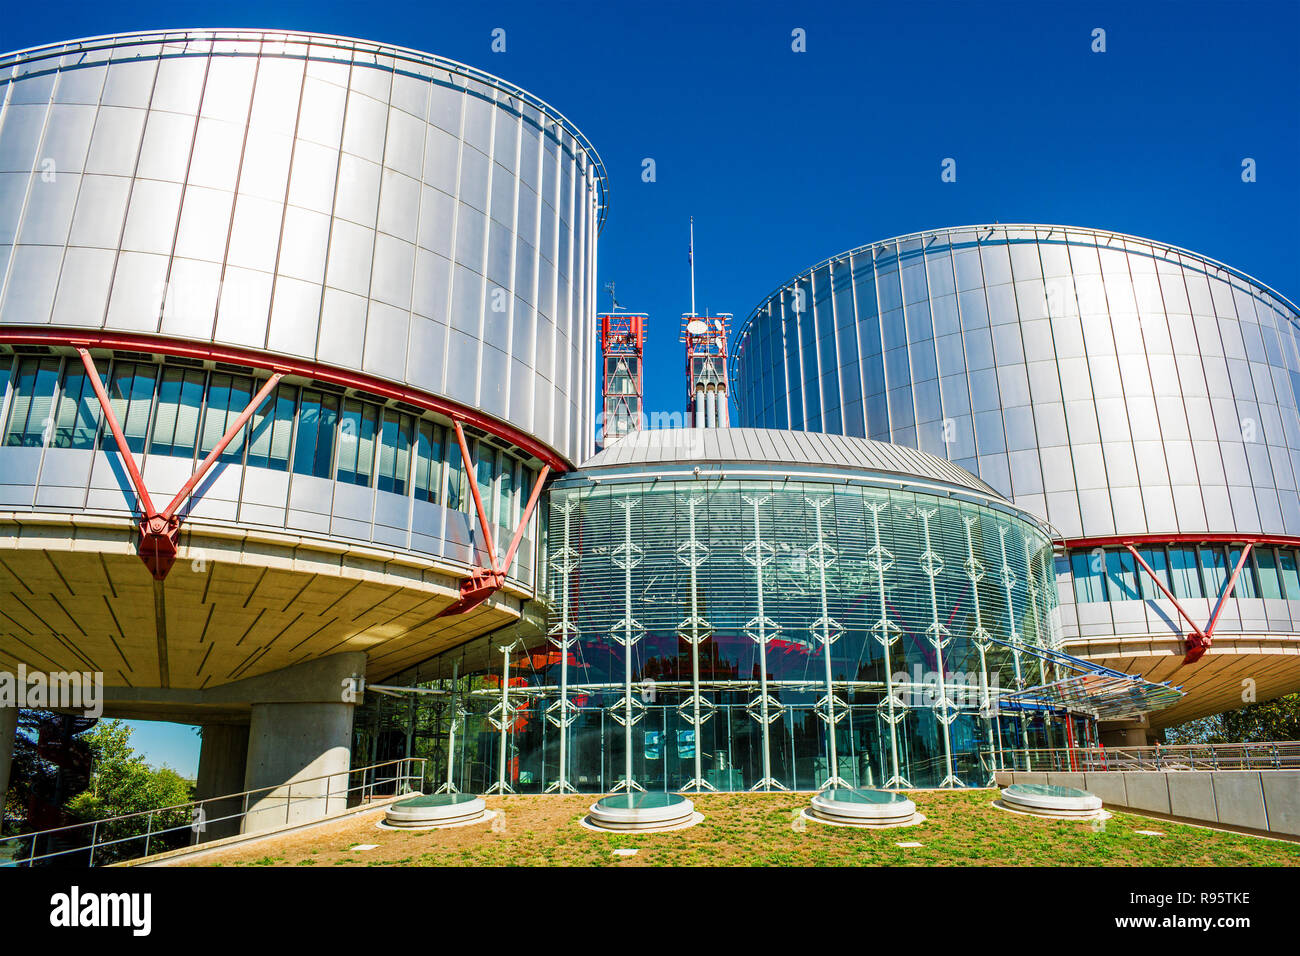 Building of the European Court of Human Rights in Strasbourg (France) - Stock Image